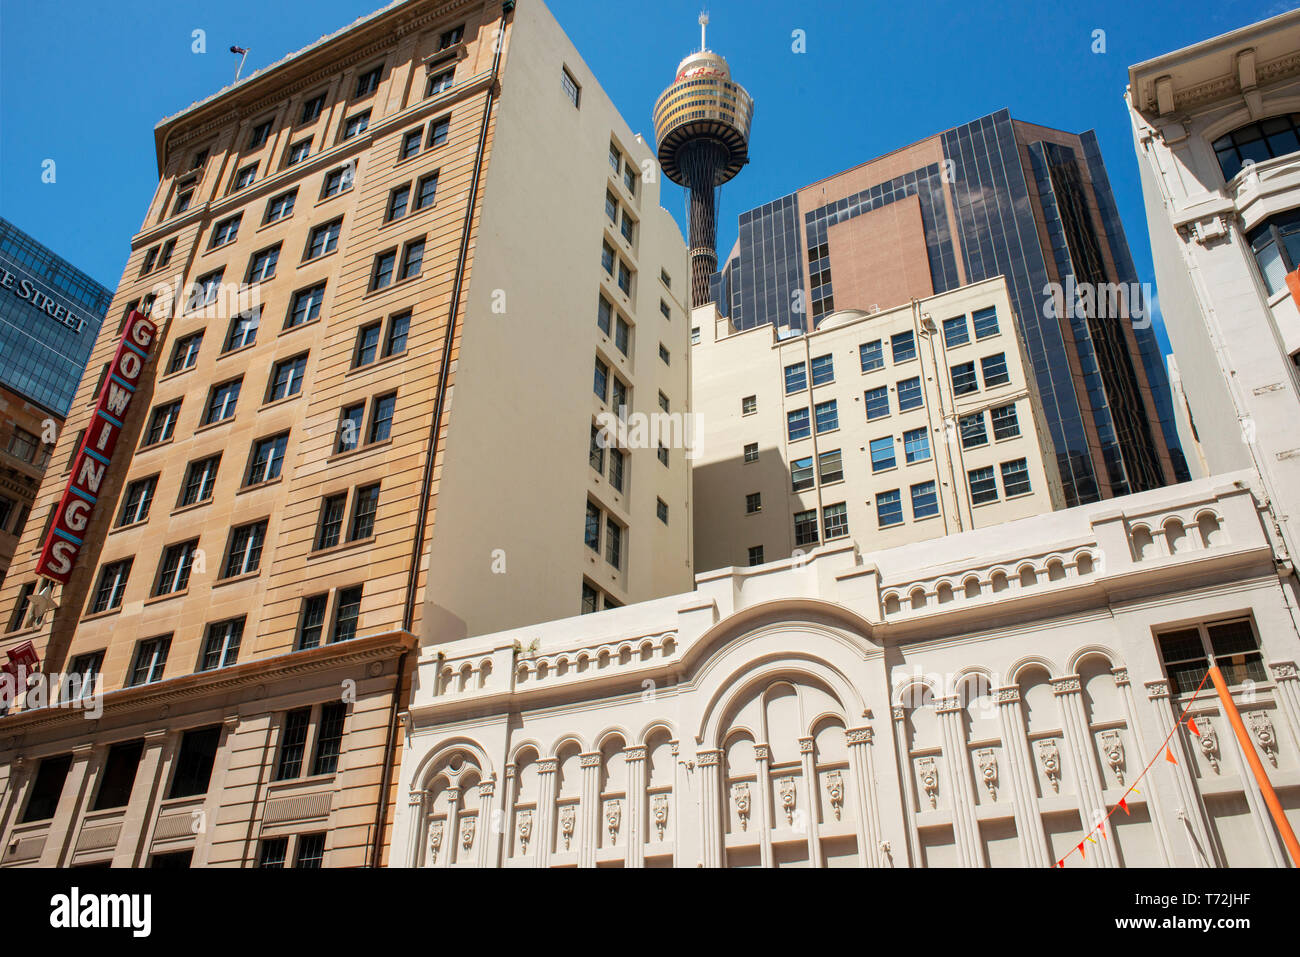 Sydney Tower Eye in Sydney city centre New South Wales Australia. Picture taken from Gowings and State Theatre Buildings in Market street city center. - Stock Image